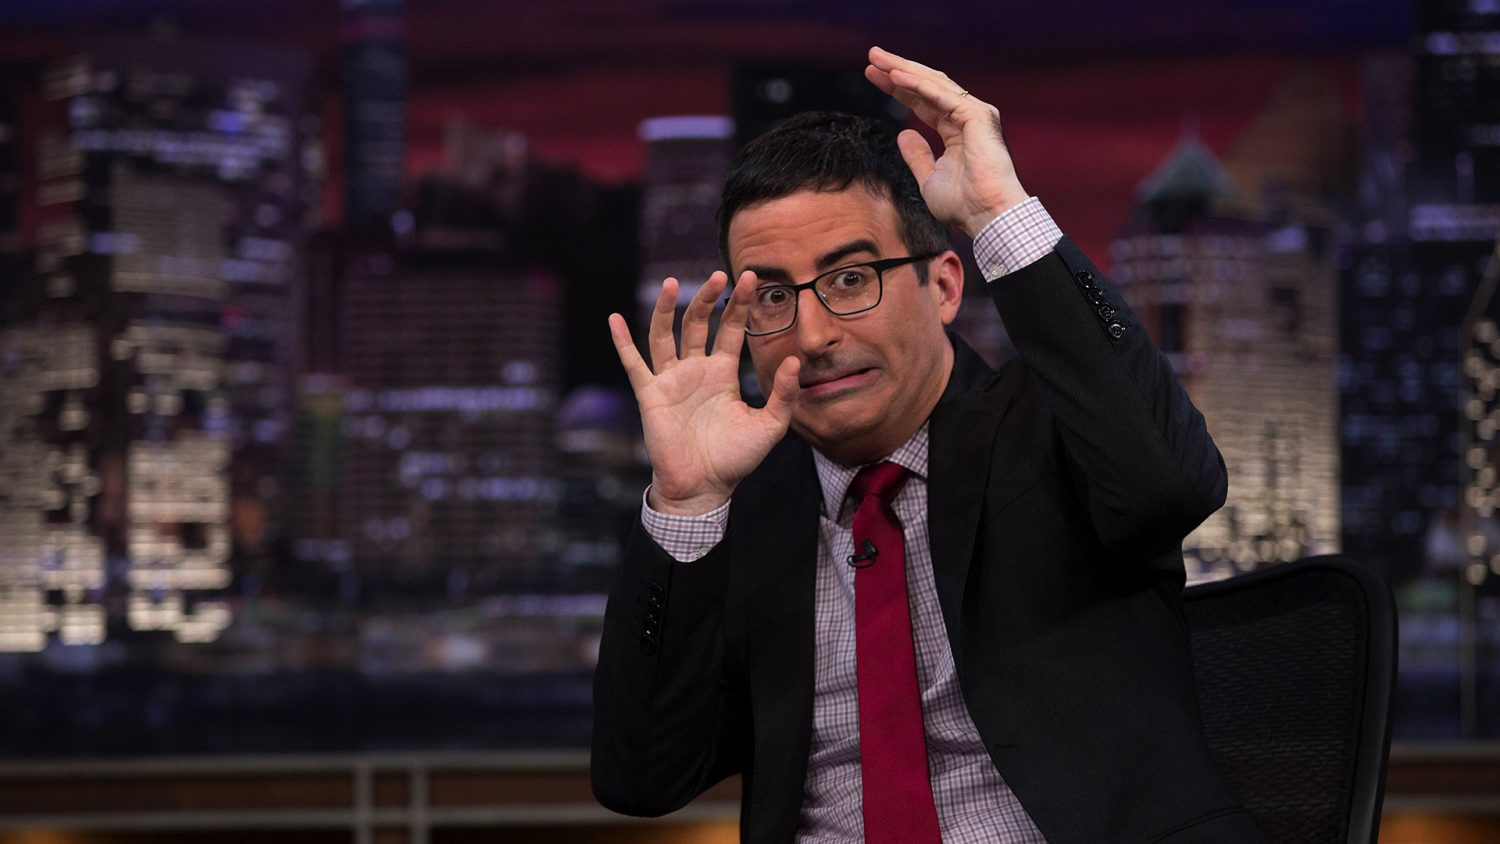 John Oliver being sued by big coal baron